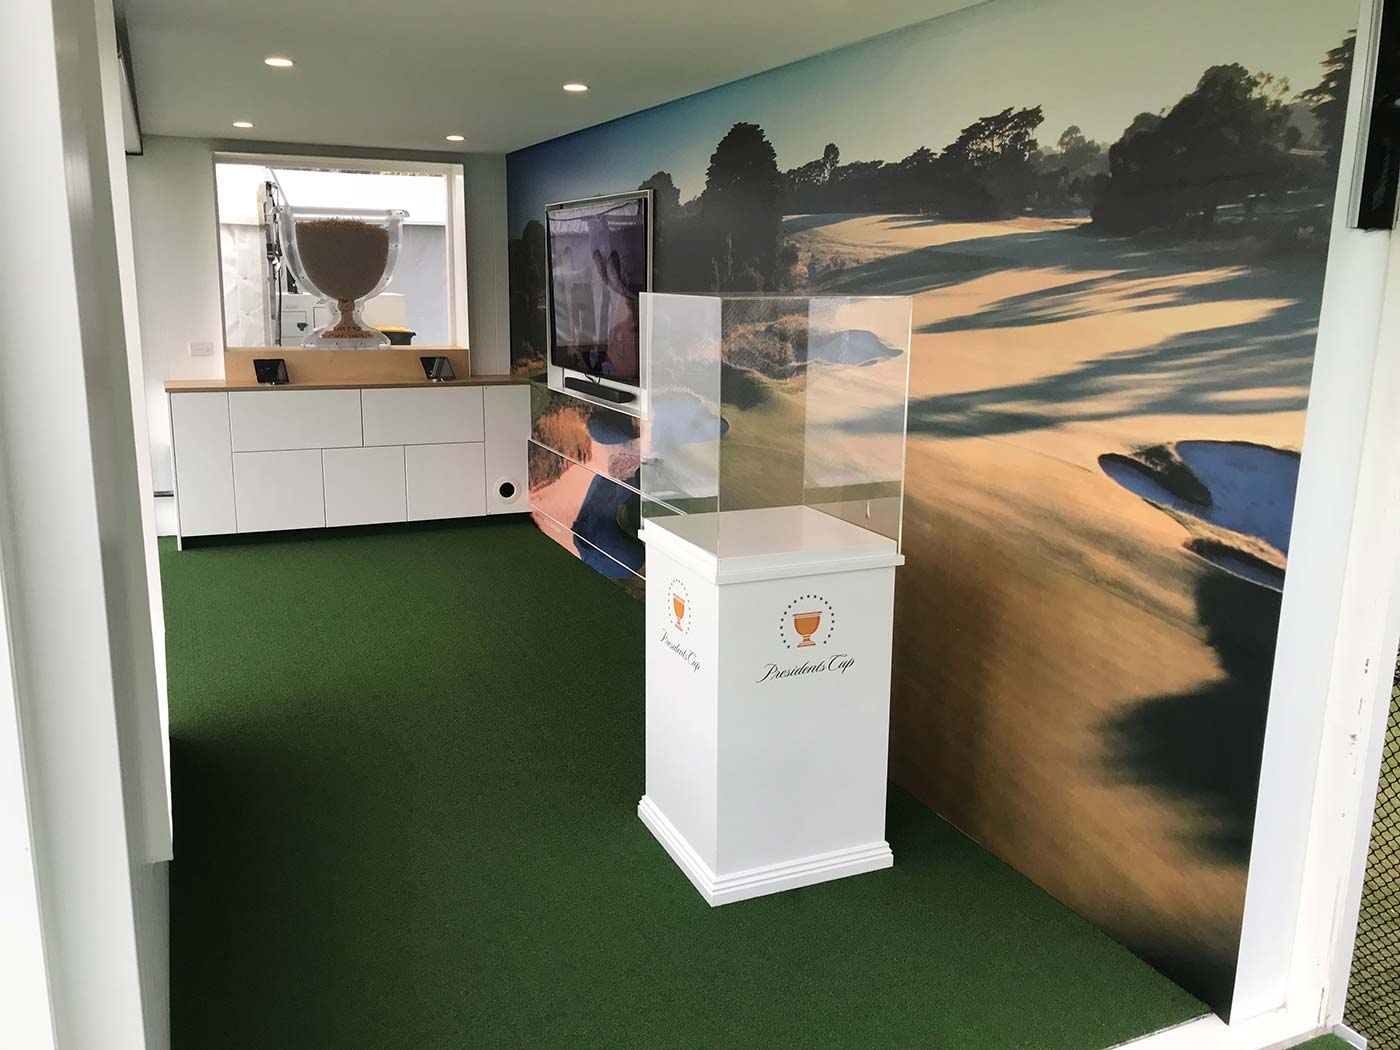 Presidents-Cup-Shipping-Container-Activation-6